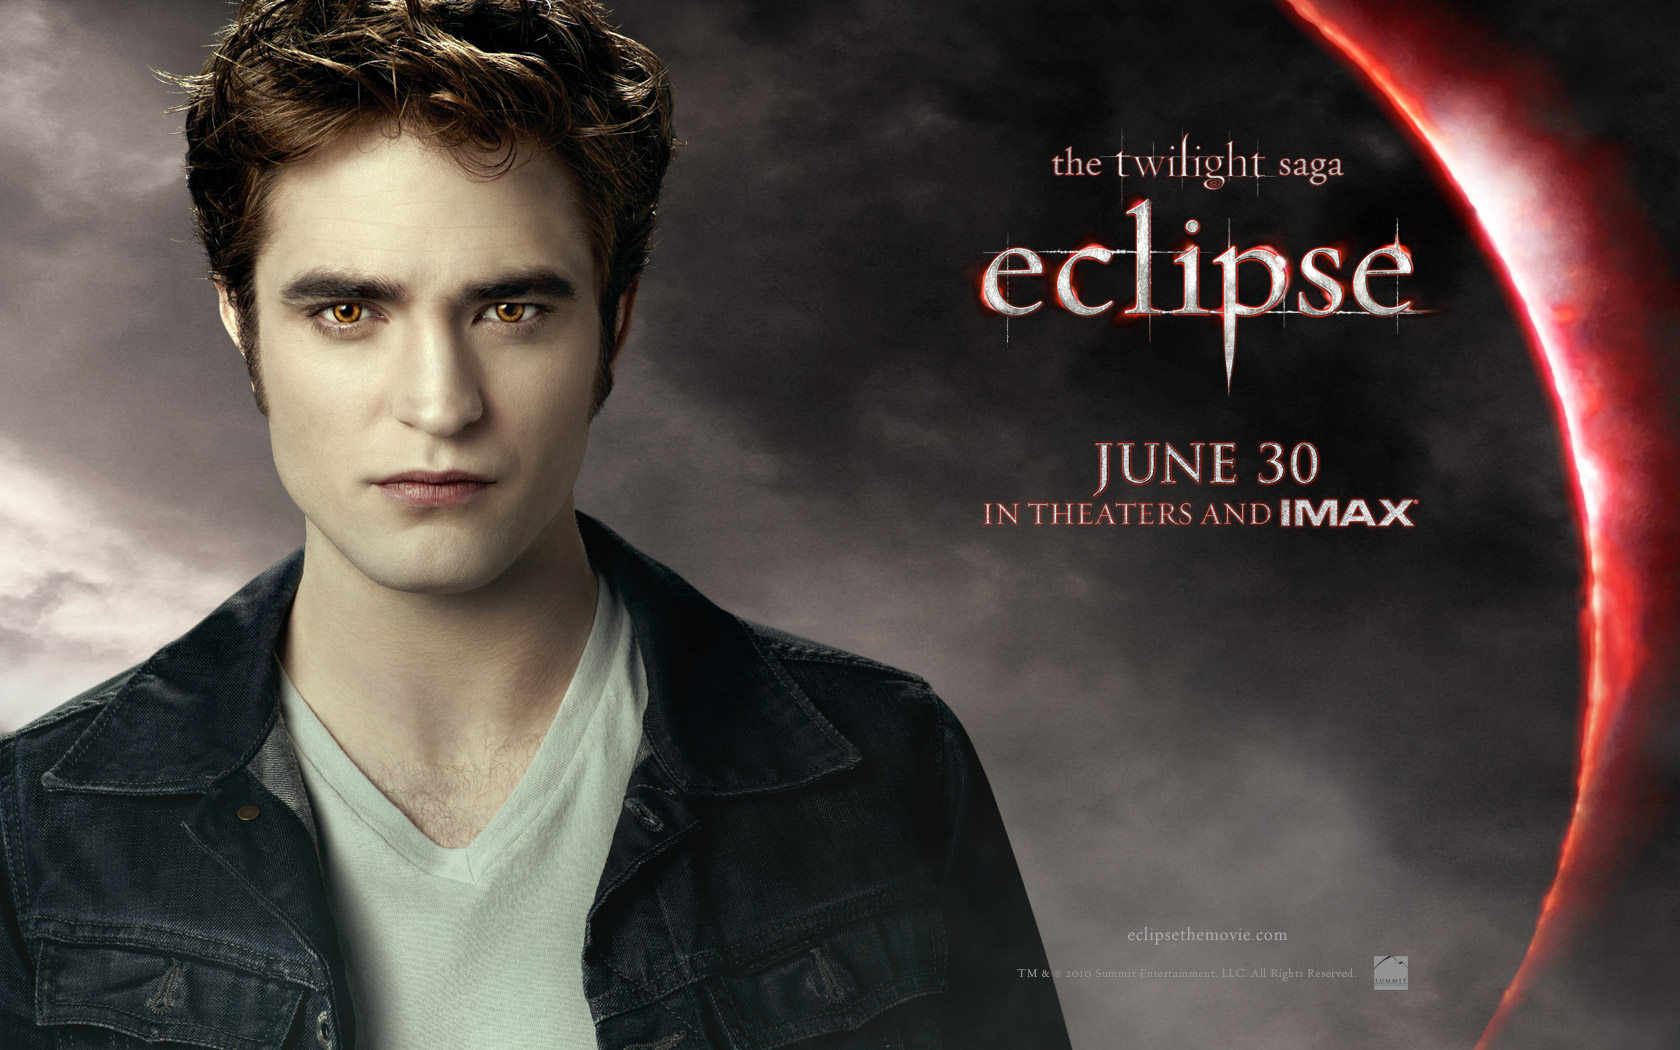 Edward From Twilight Eclipse Desktop Wallpaper